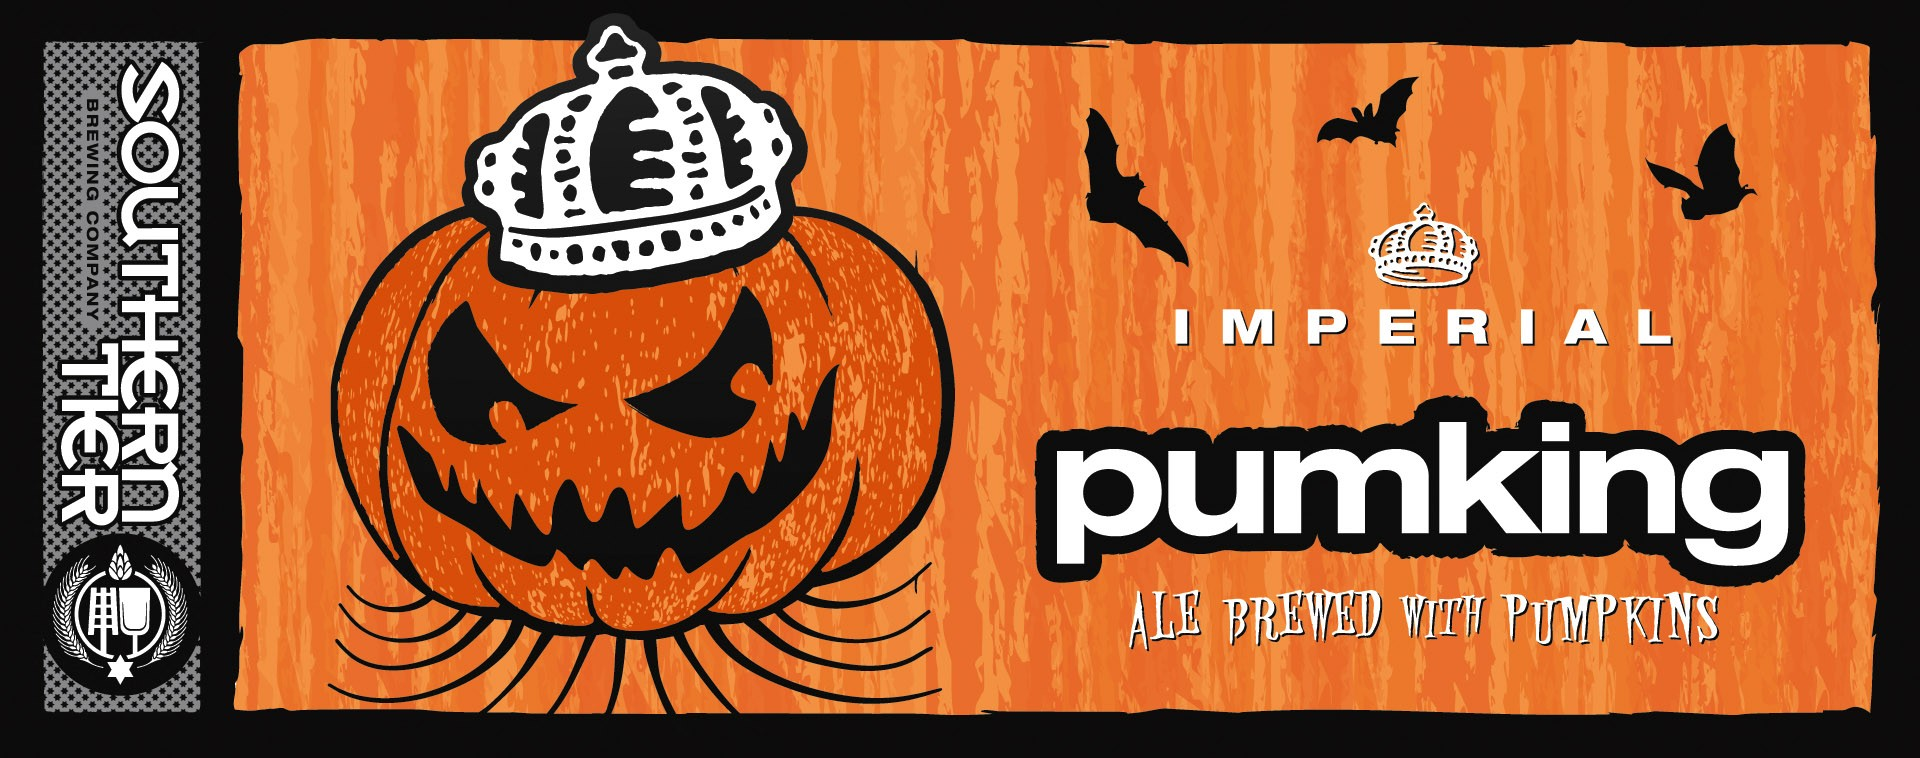 pumking-playlistx.jpg